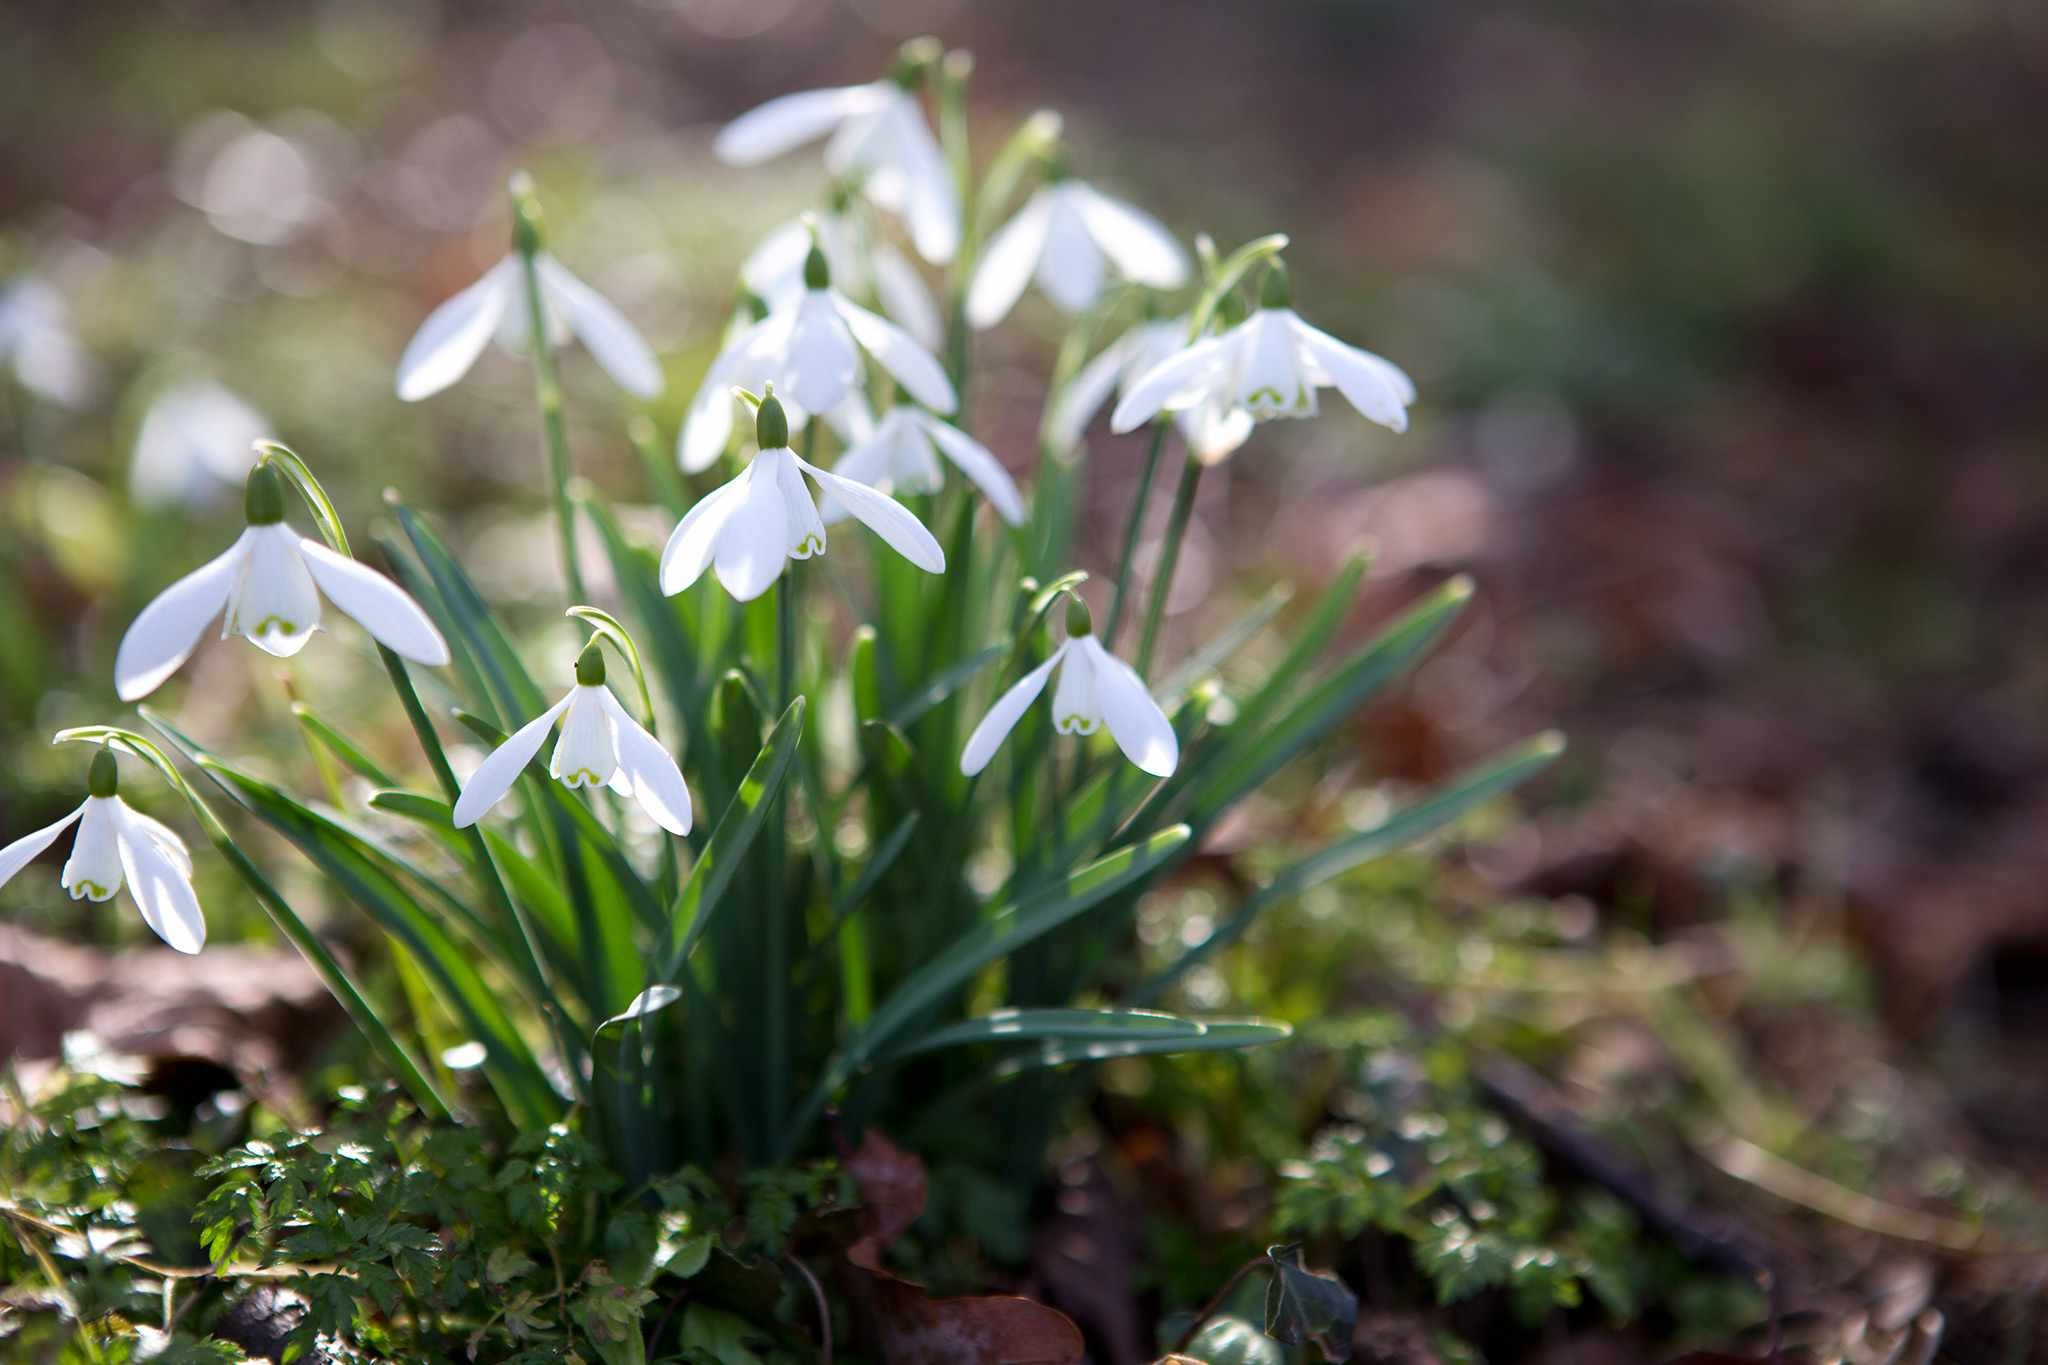 A clump of flowering snowdrops with sunlight shining through them